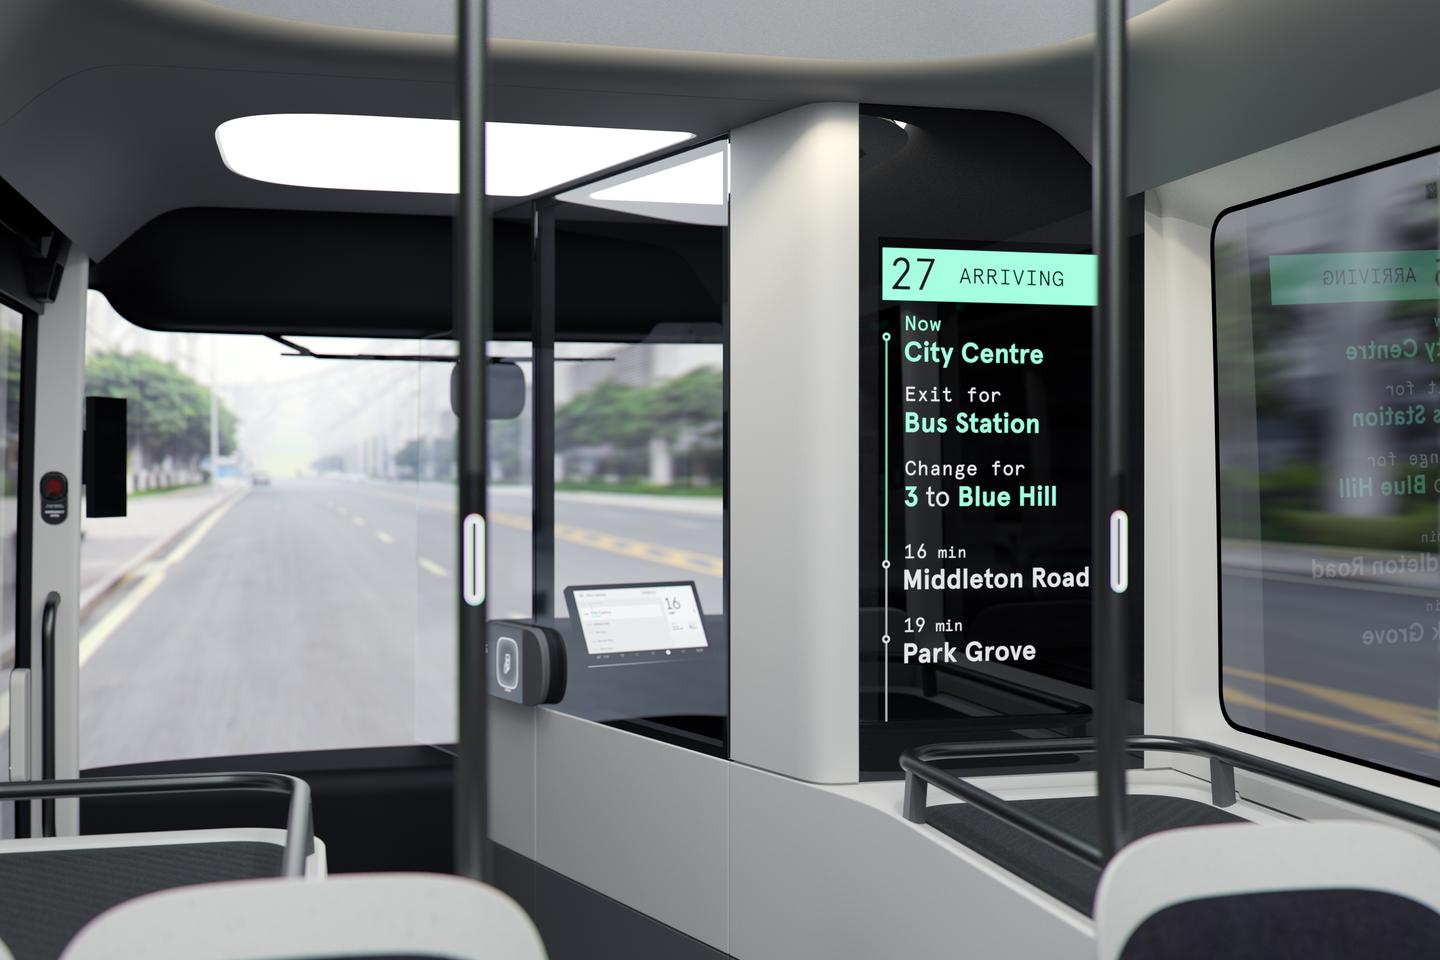 A sleeker, more tech-forward bus design enhances the rider experience